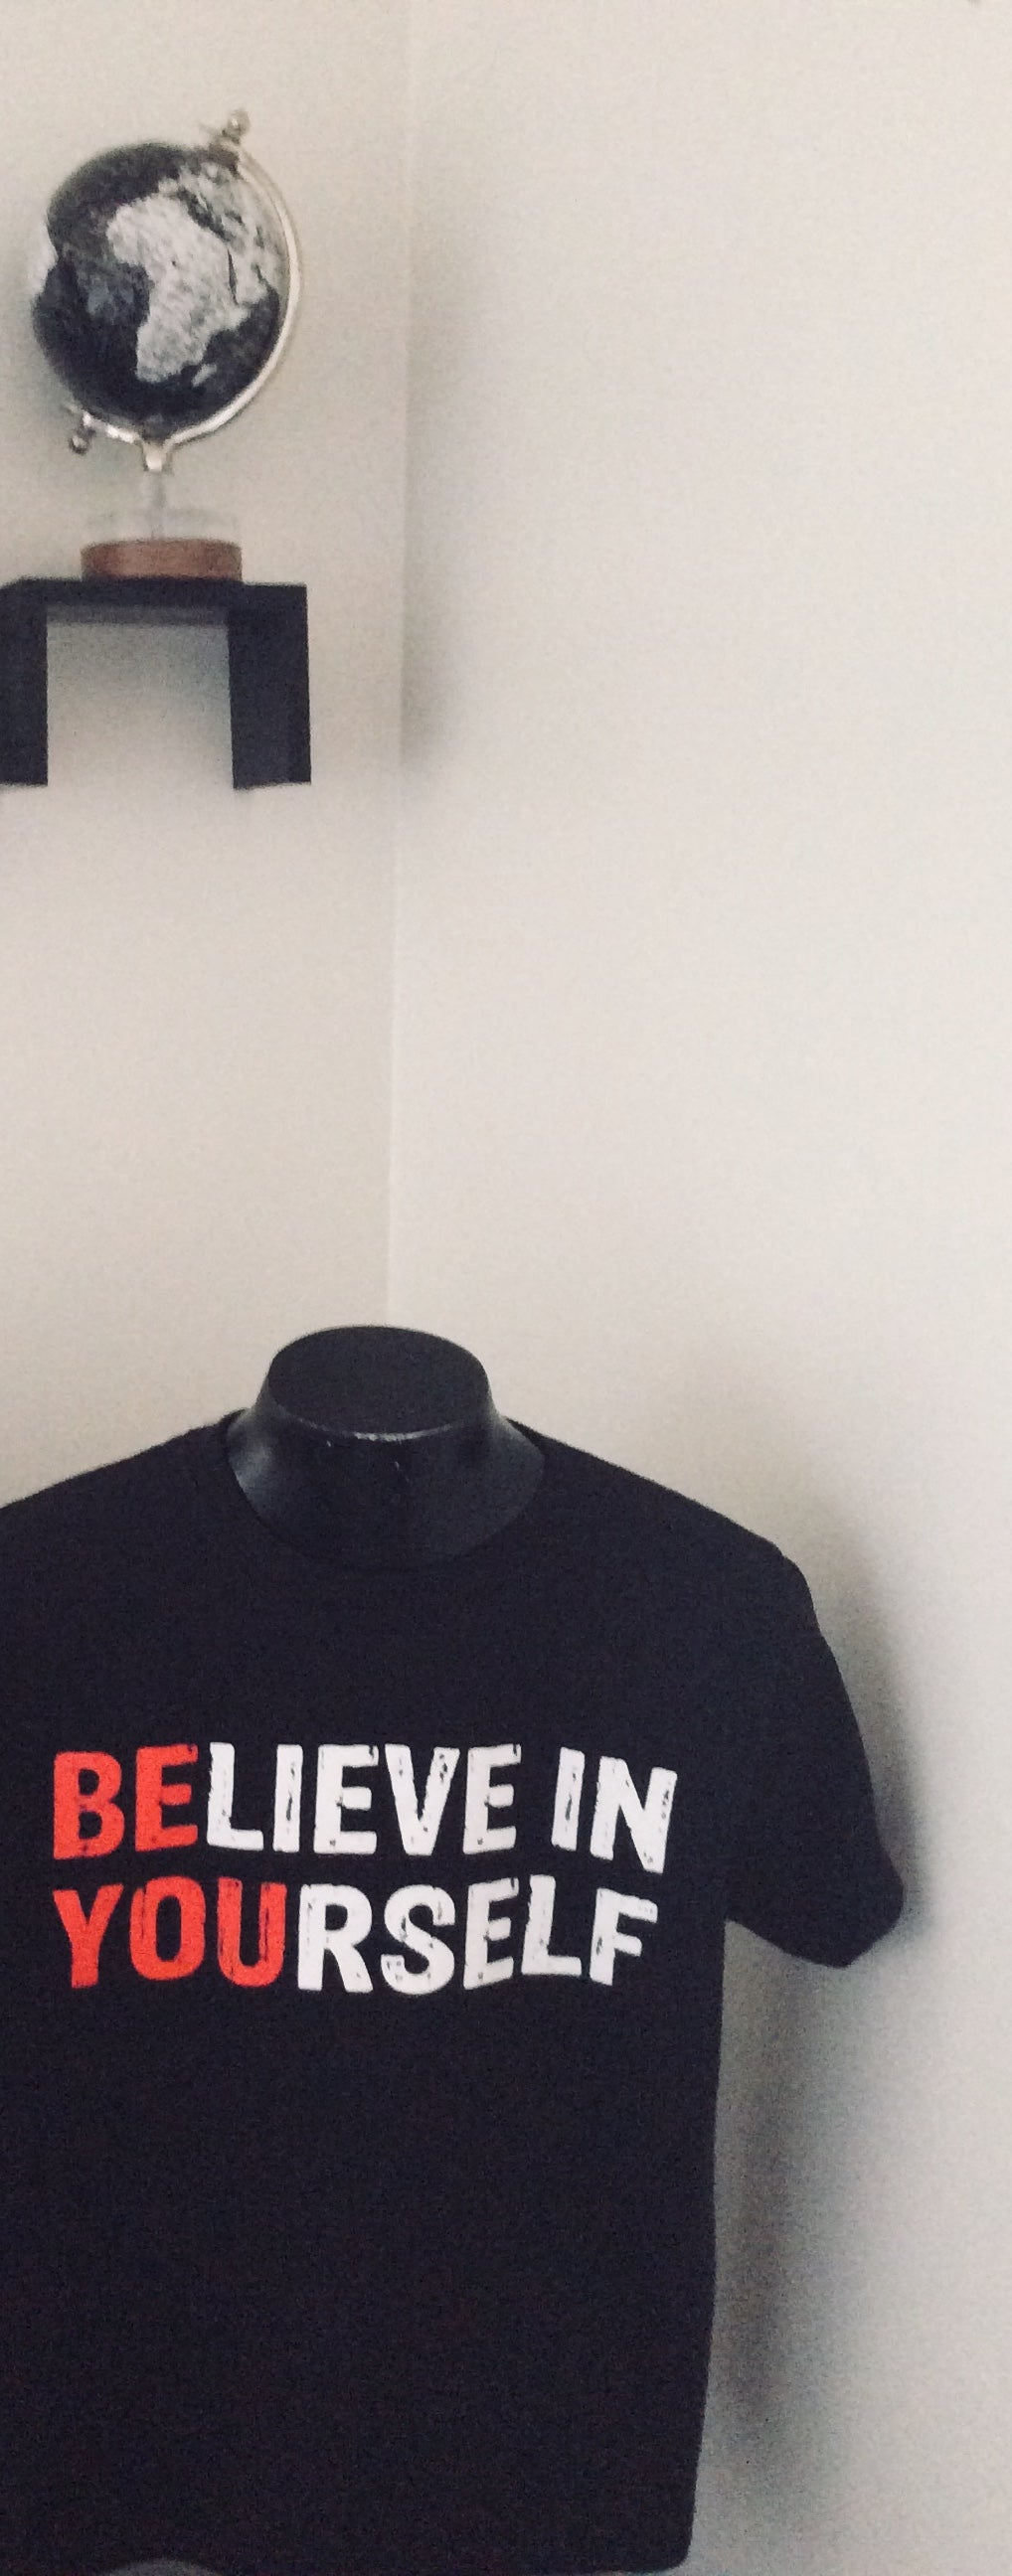 Believe In Yourself - Child Tee